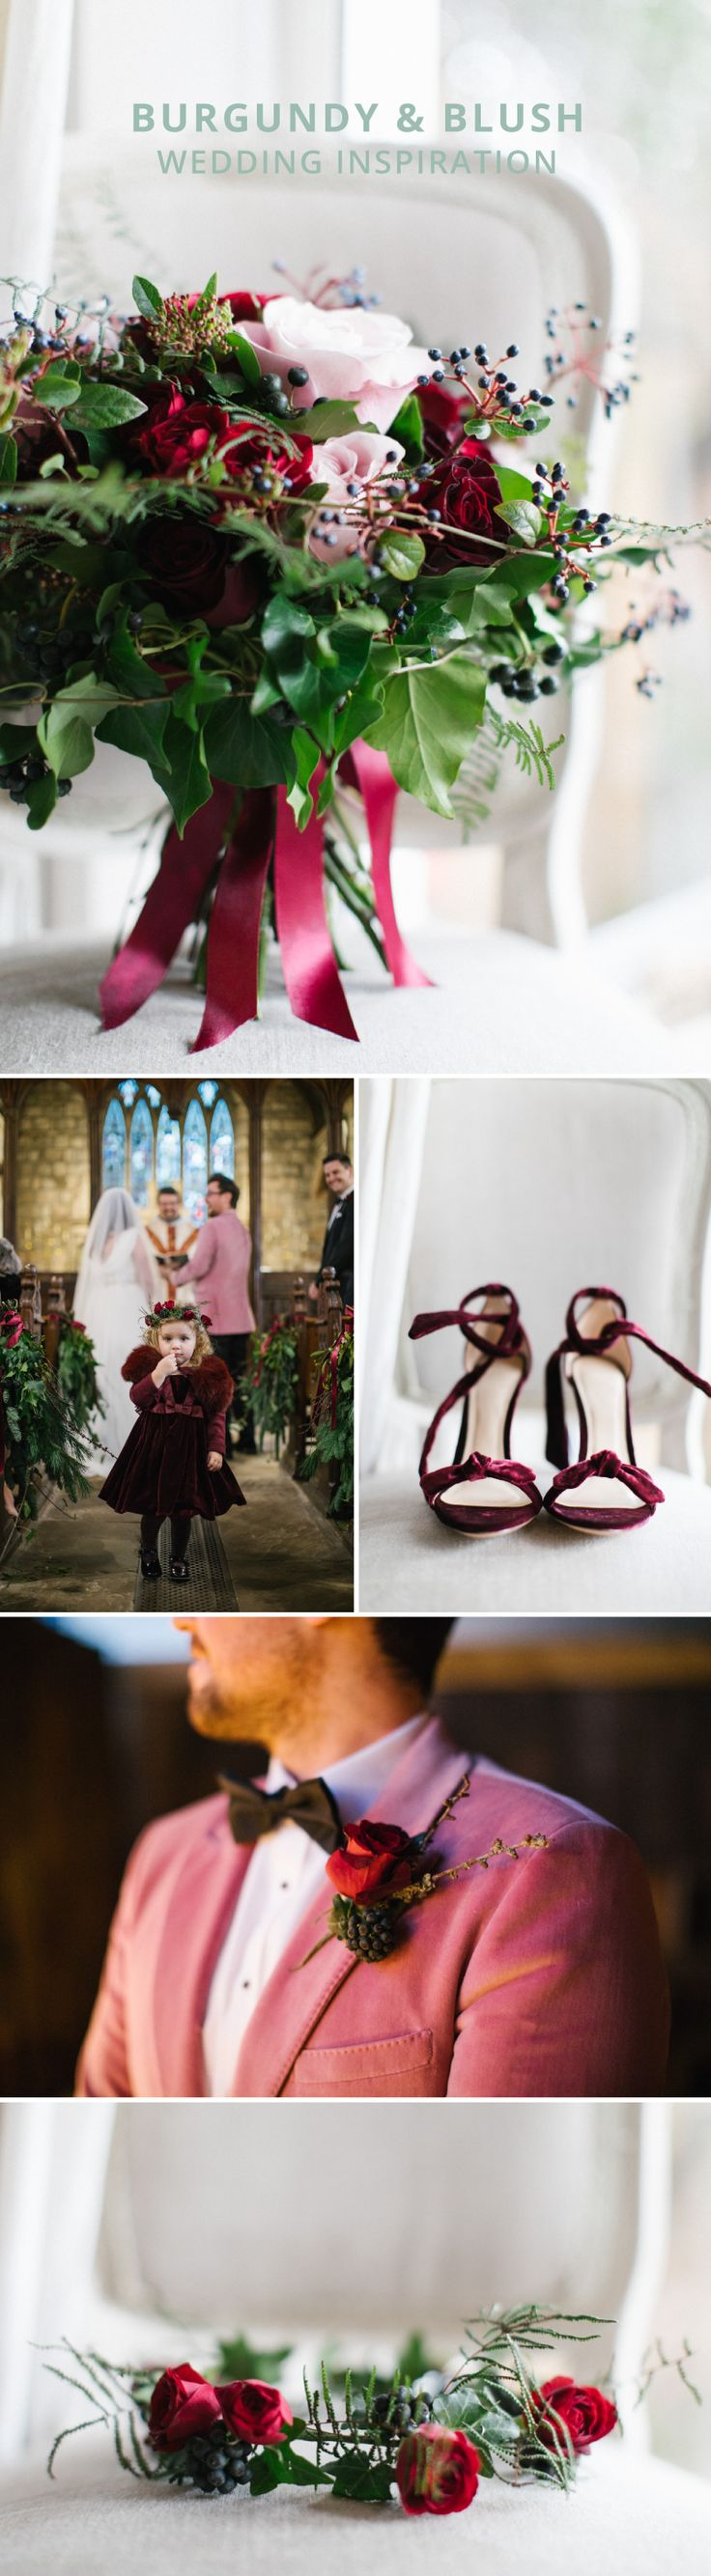 Burgundy and blush wedding inspiration | Marsala wedding colour theme | Burgundy wedding theme | Classy red wedding theme | Groom in pink jacket | Velvet wedding shoes | Cute flower girl | Winter wedding inspiration